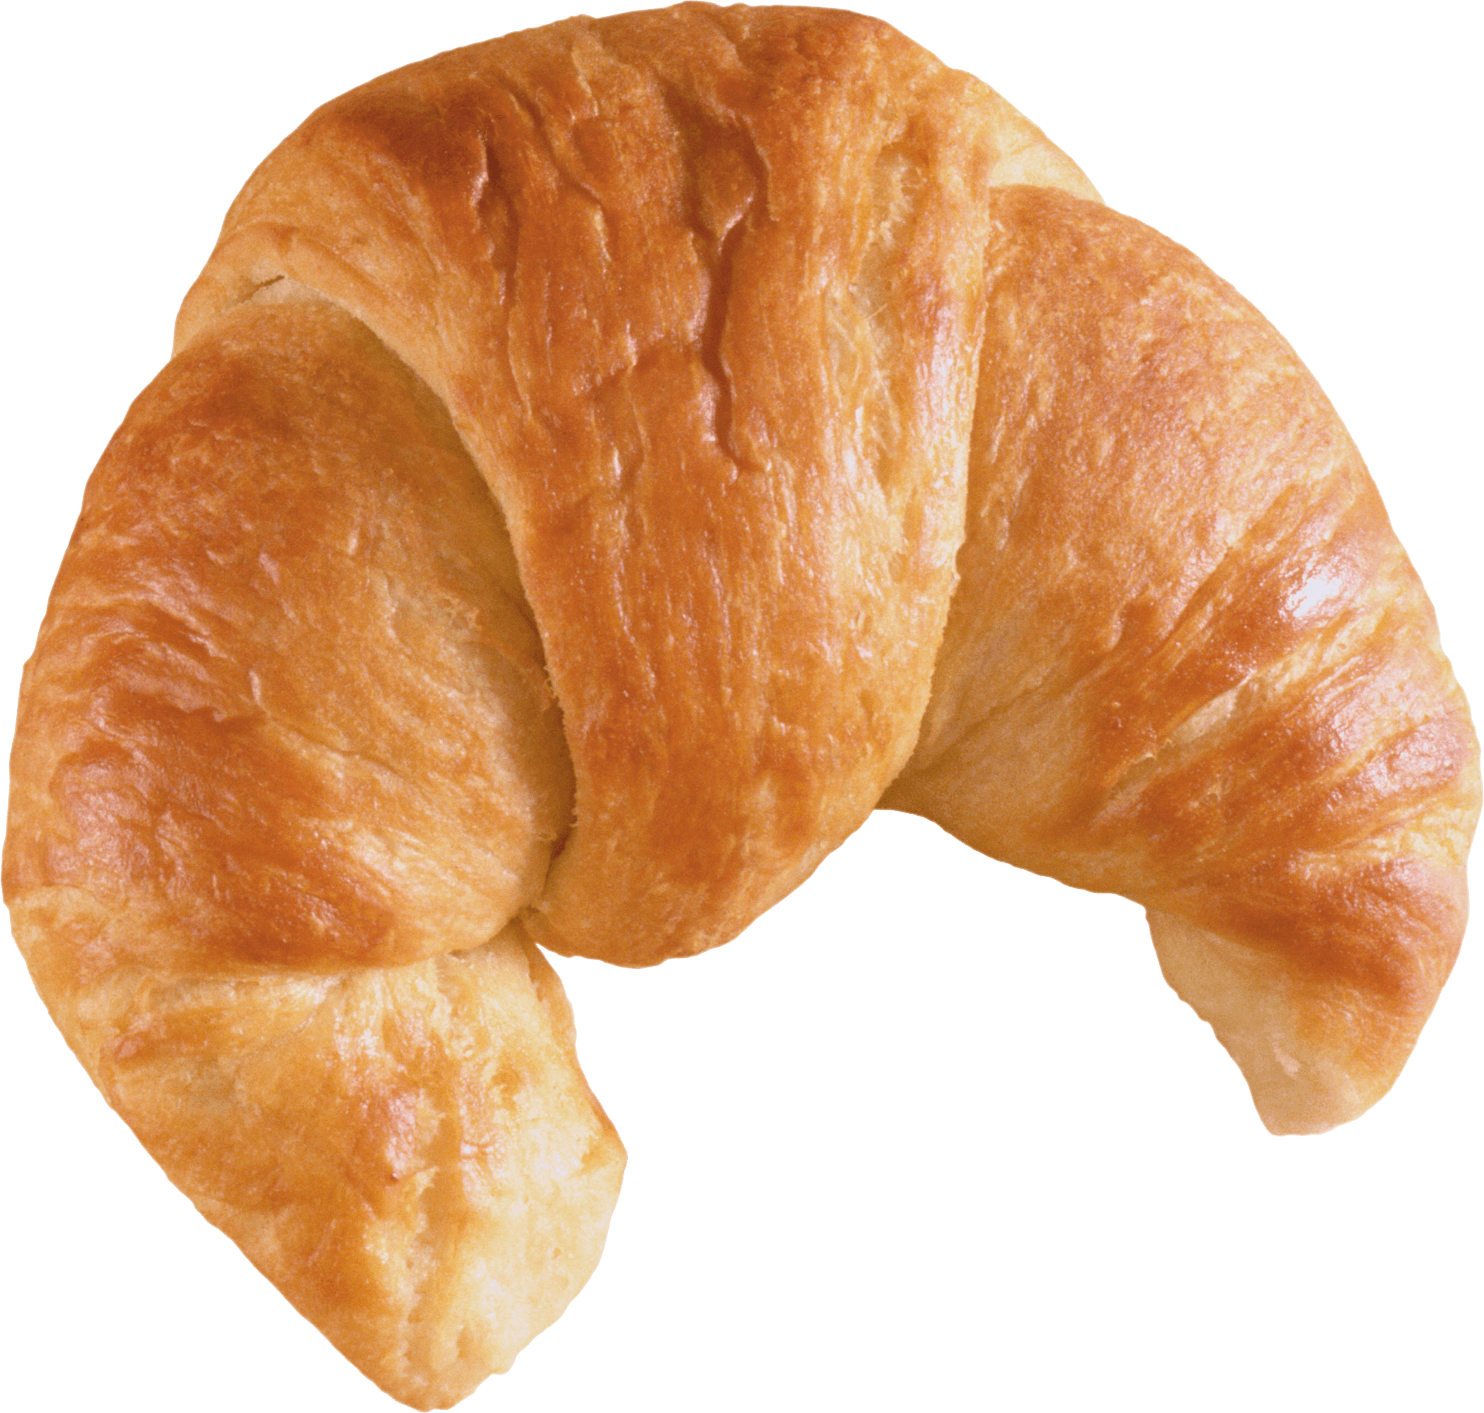 Bread PNG - 25544